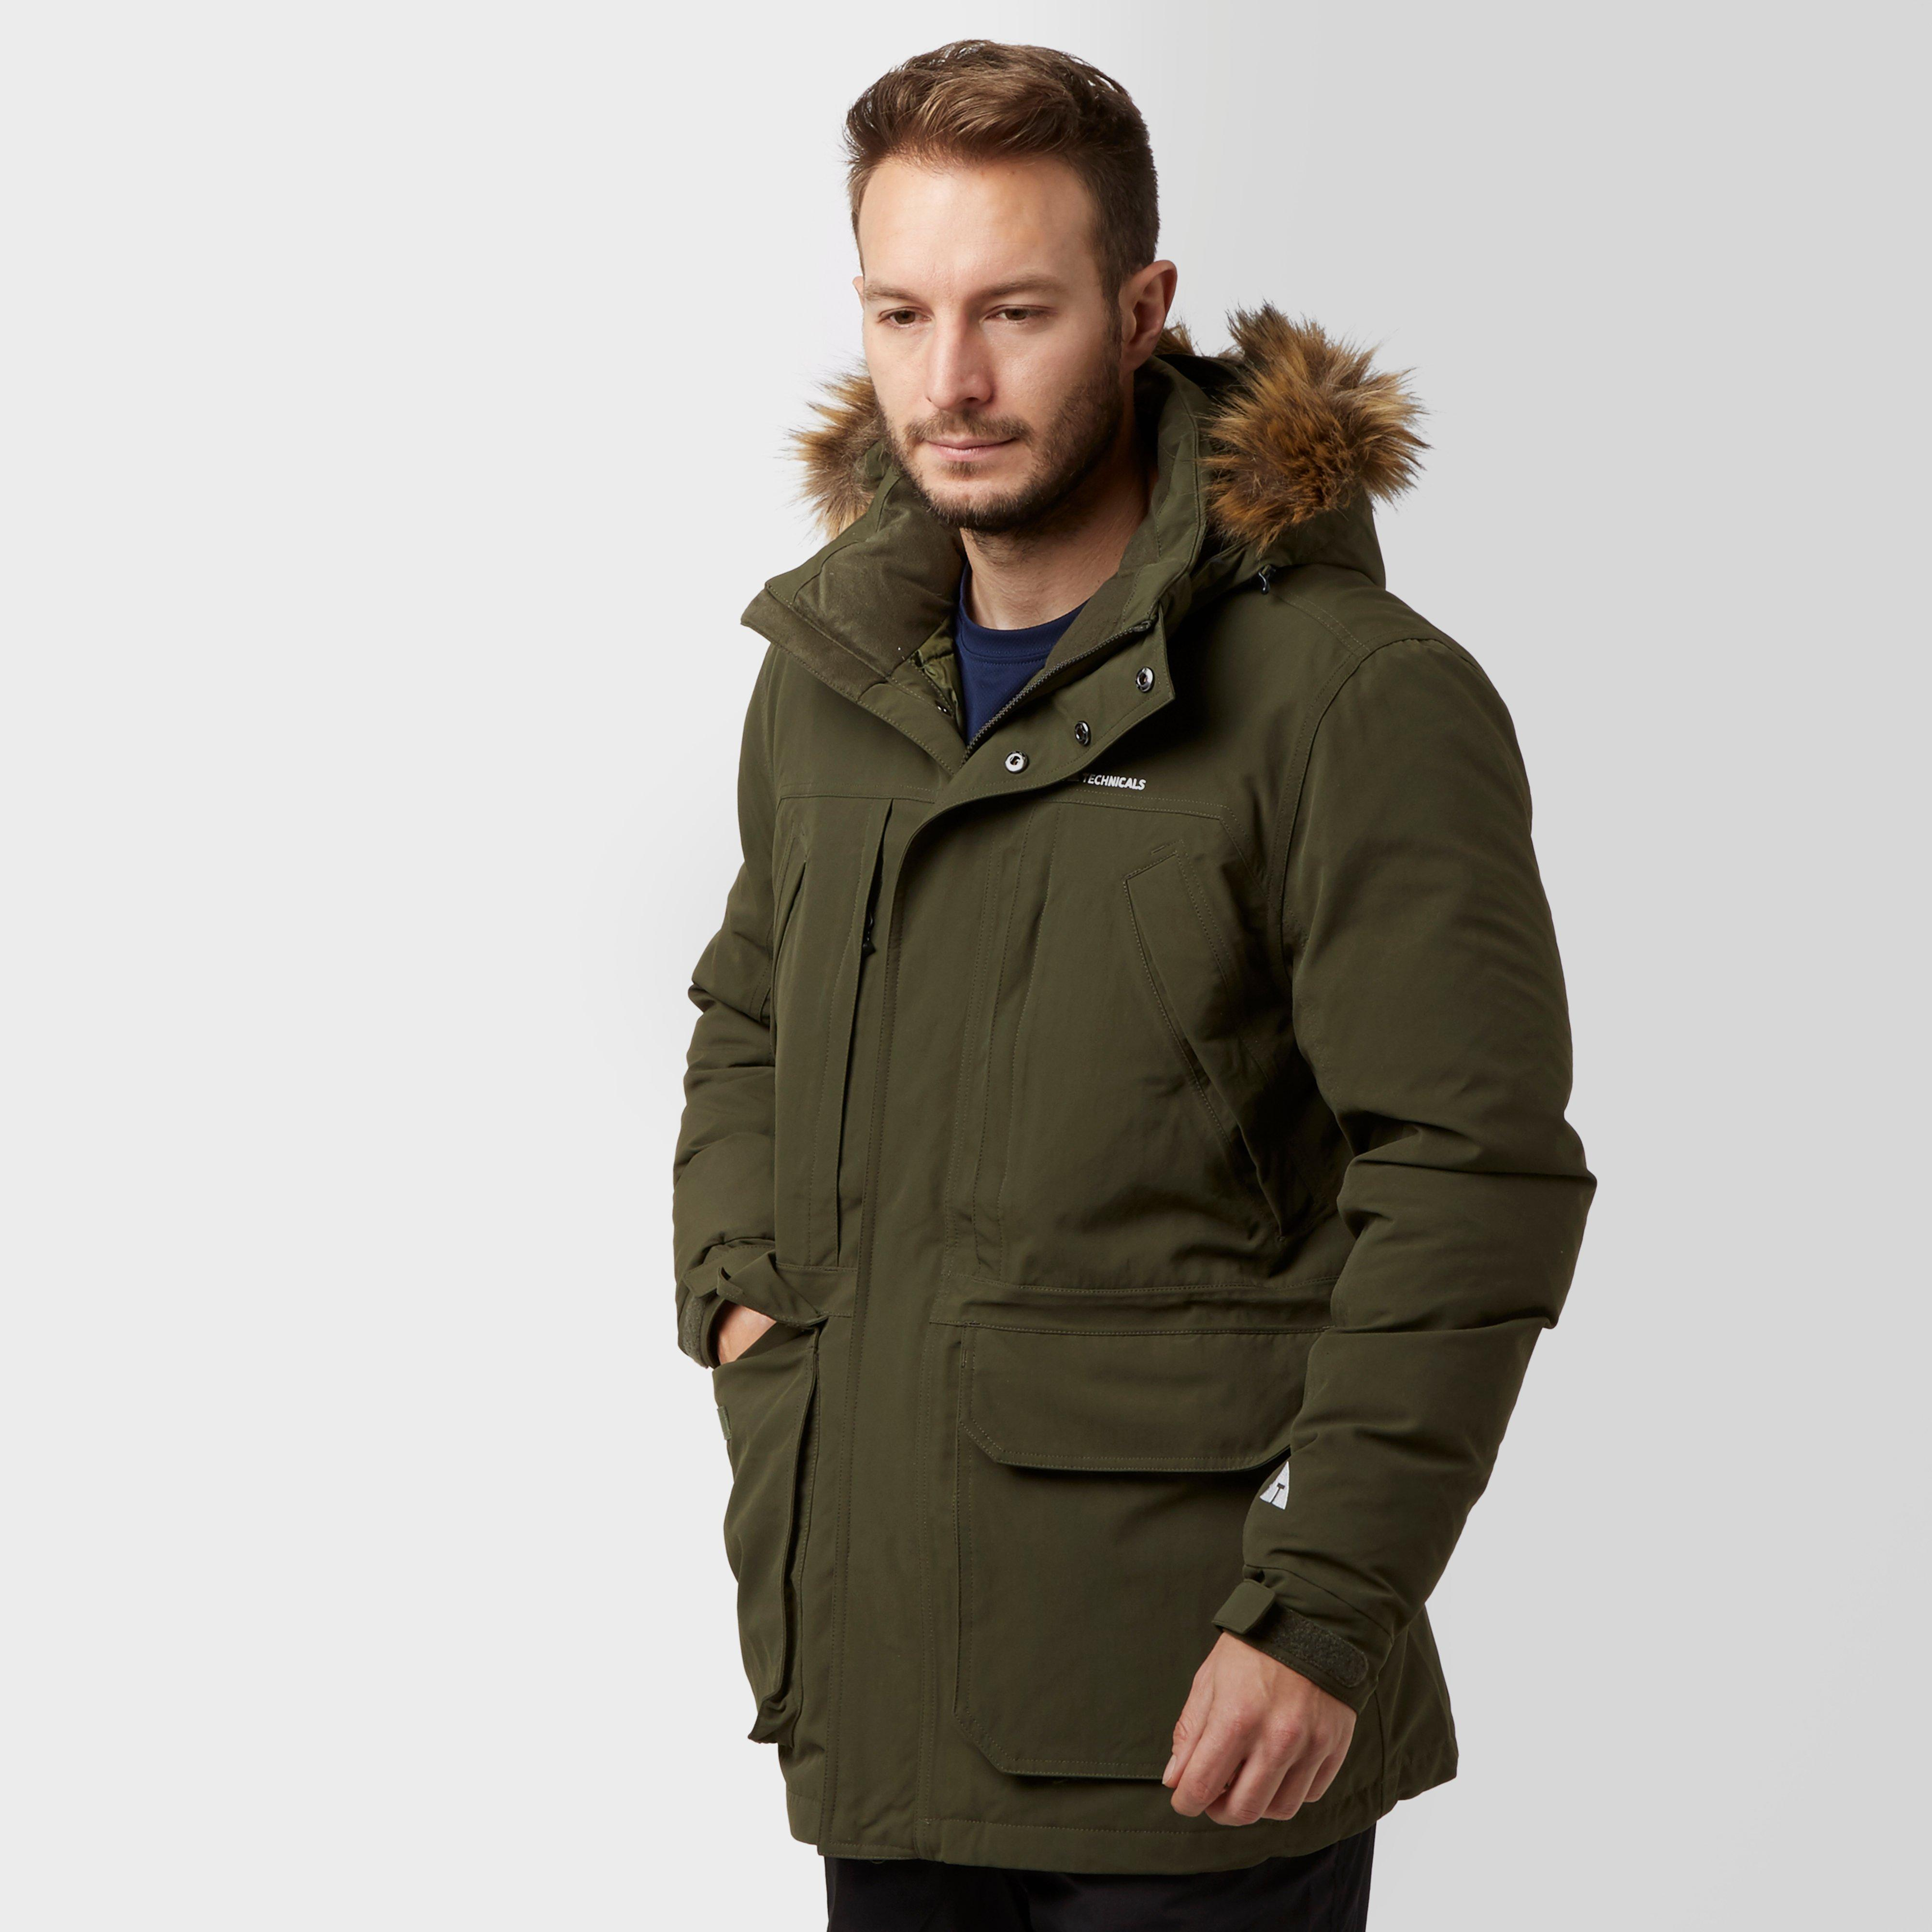 Technicals Men's Down Parka - Green, Green | Bear Grylls UK | £90.00